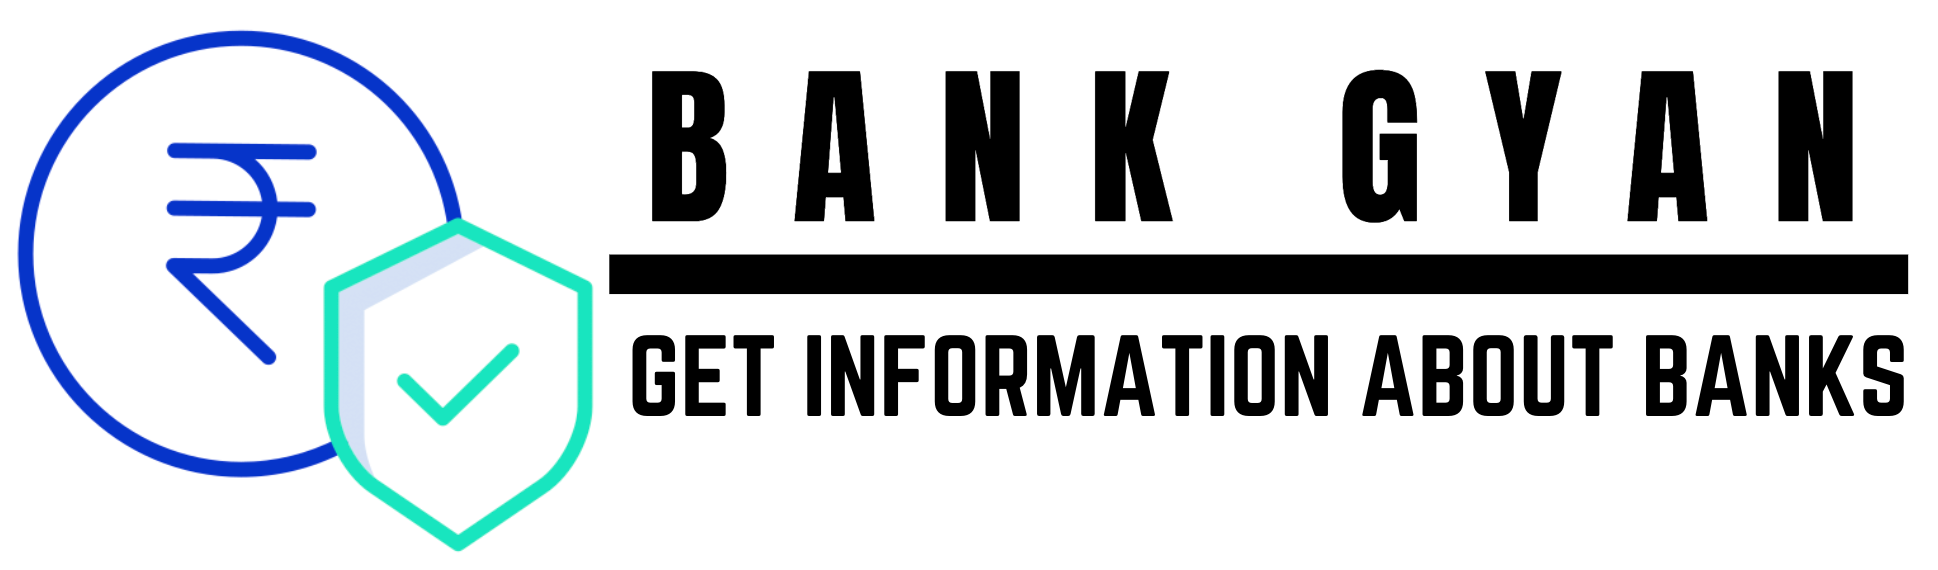 Bank Gyan - Get Information About Banks